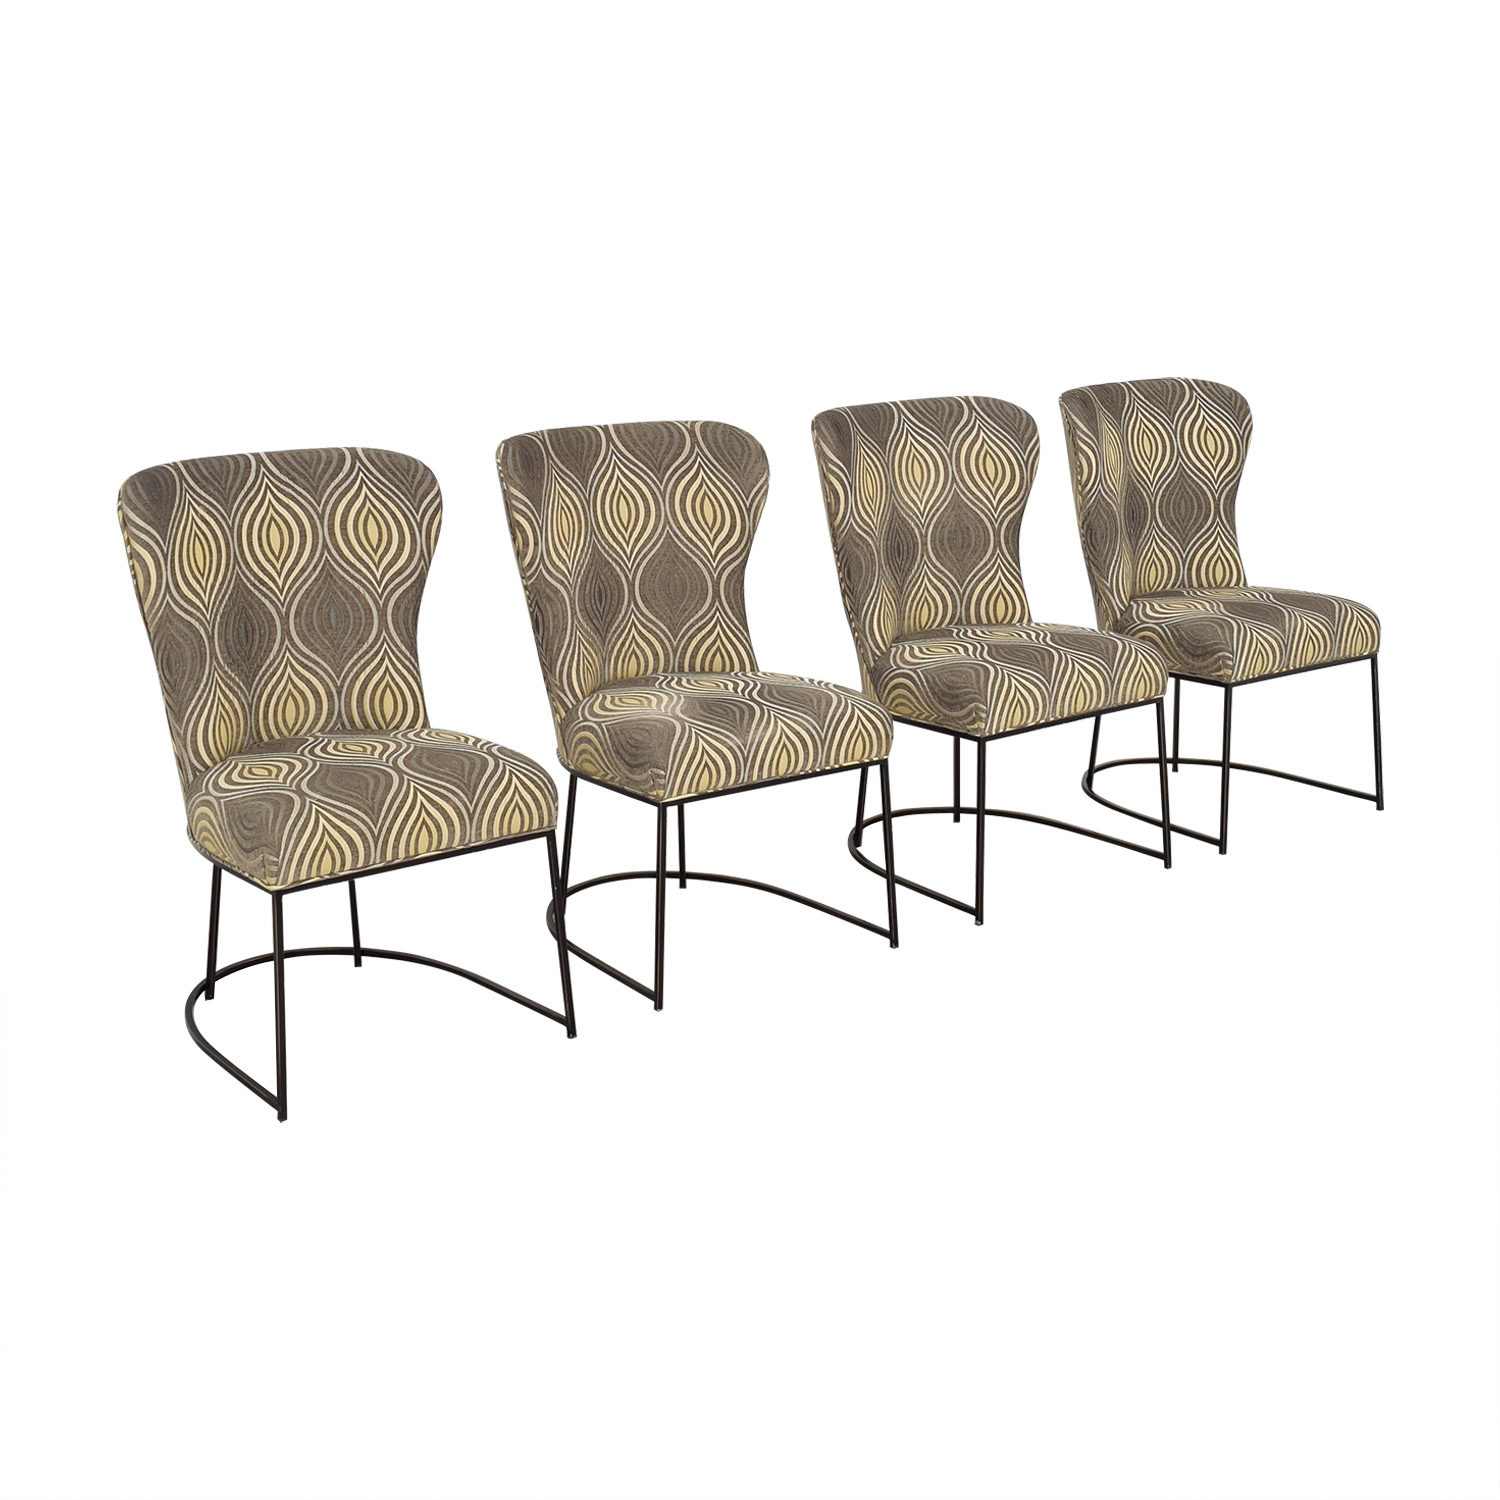 Custom Upholstered Dining Chairs used